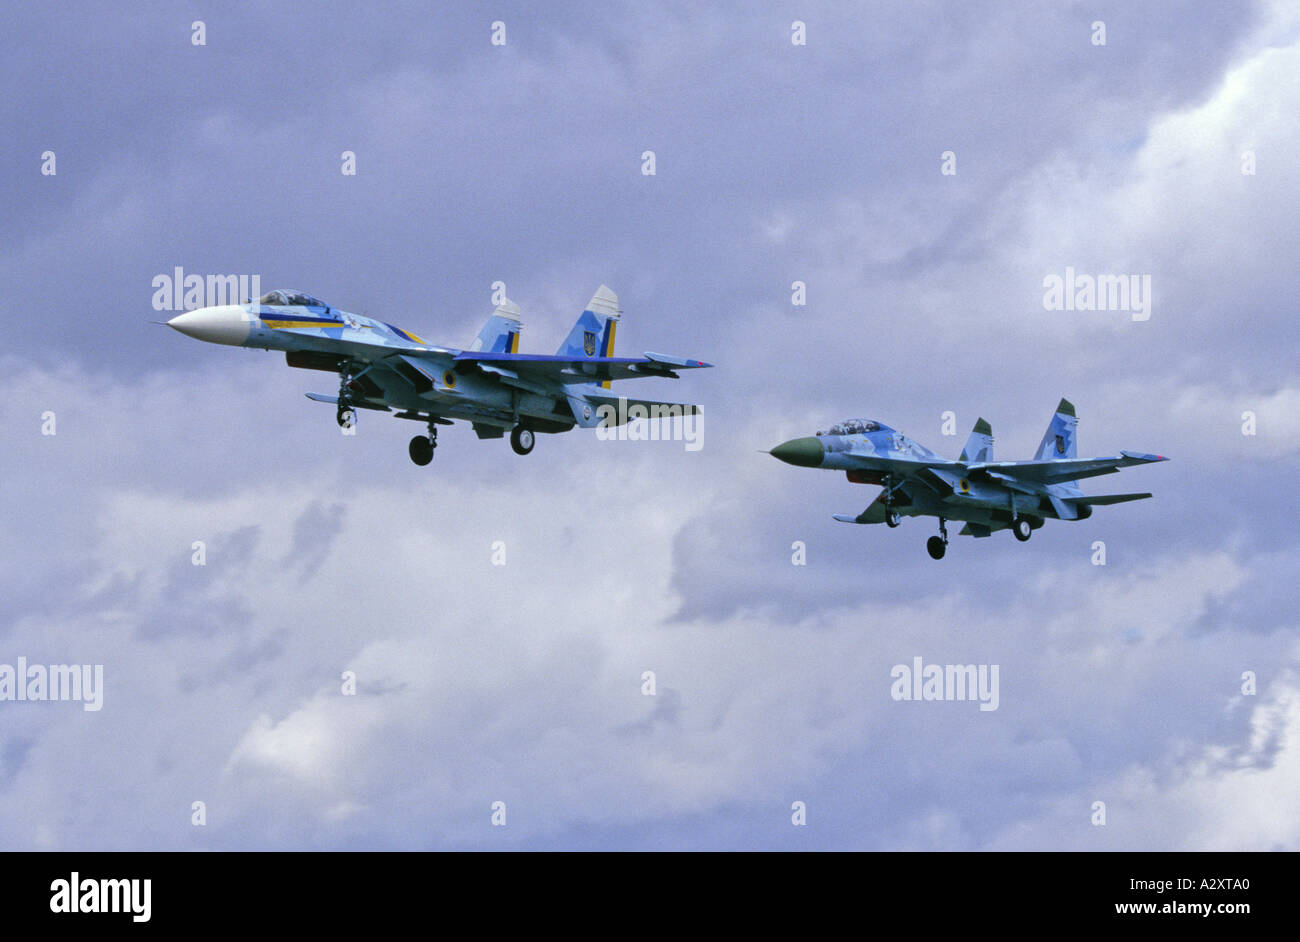 Formation flight with landing gears down Ukraine Air Force Sukhoi Su-27 Flanker - Stock Image